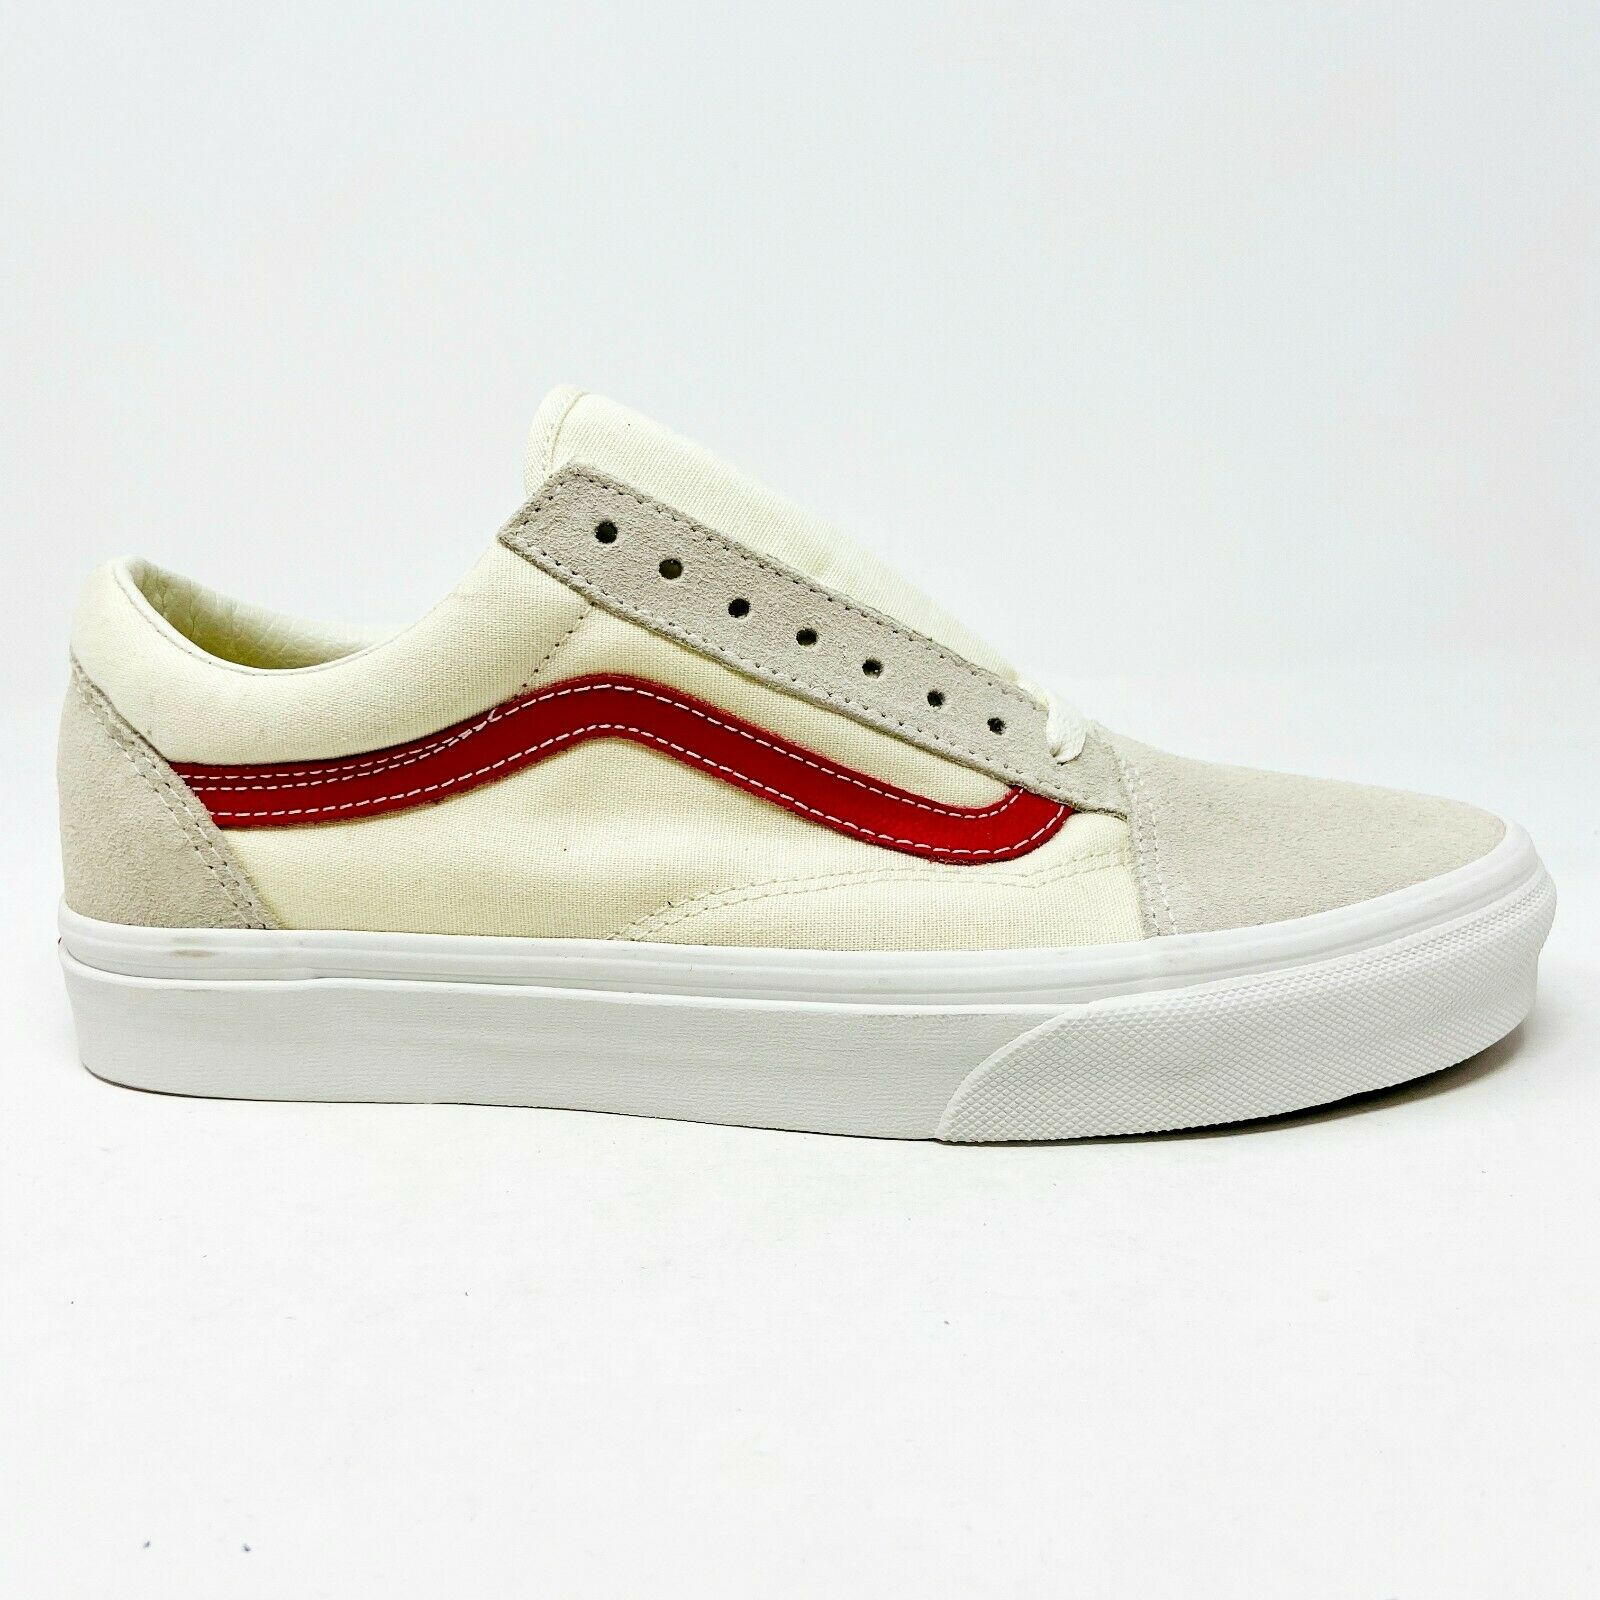 Vans Old Skool Cream Red